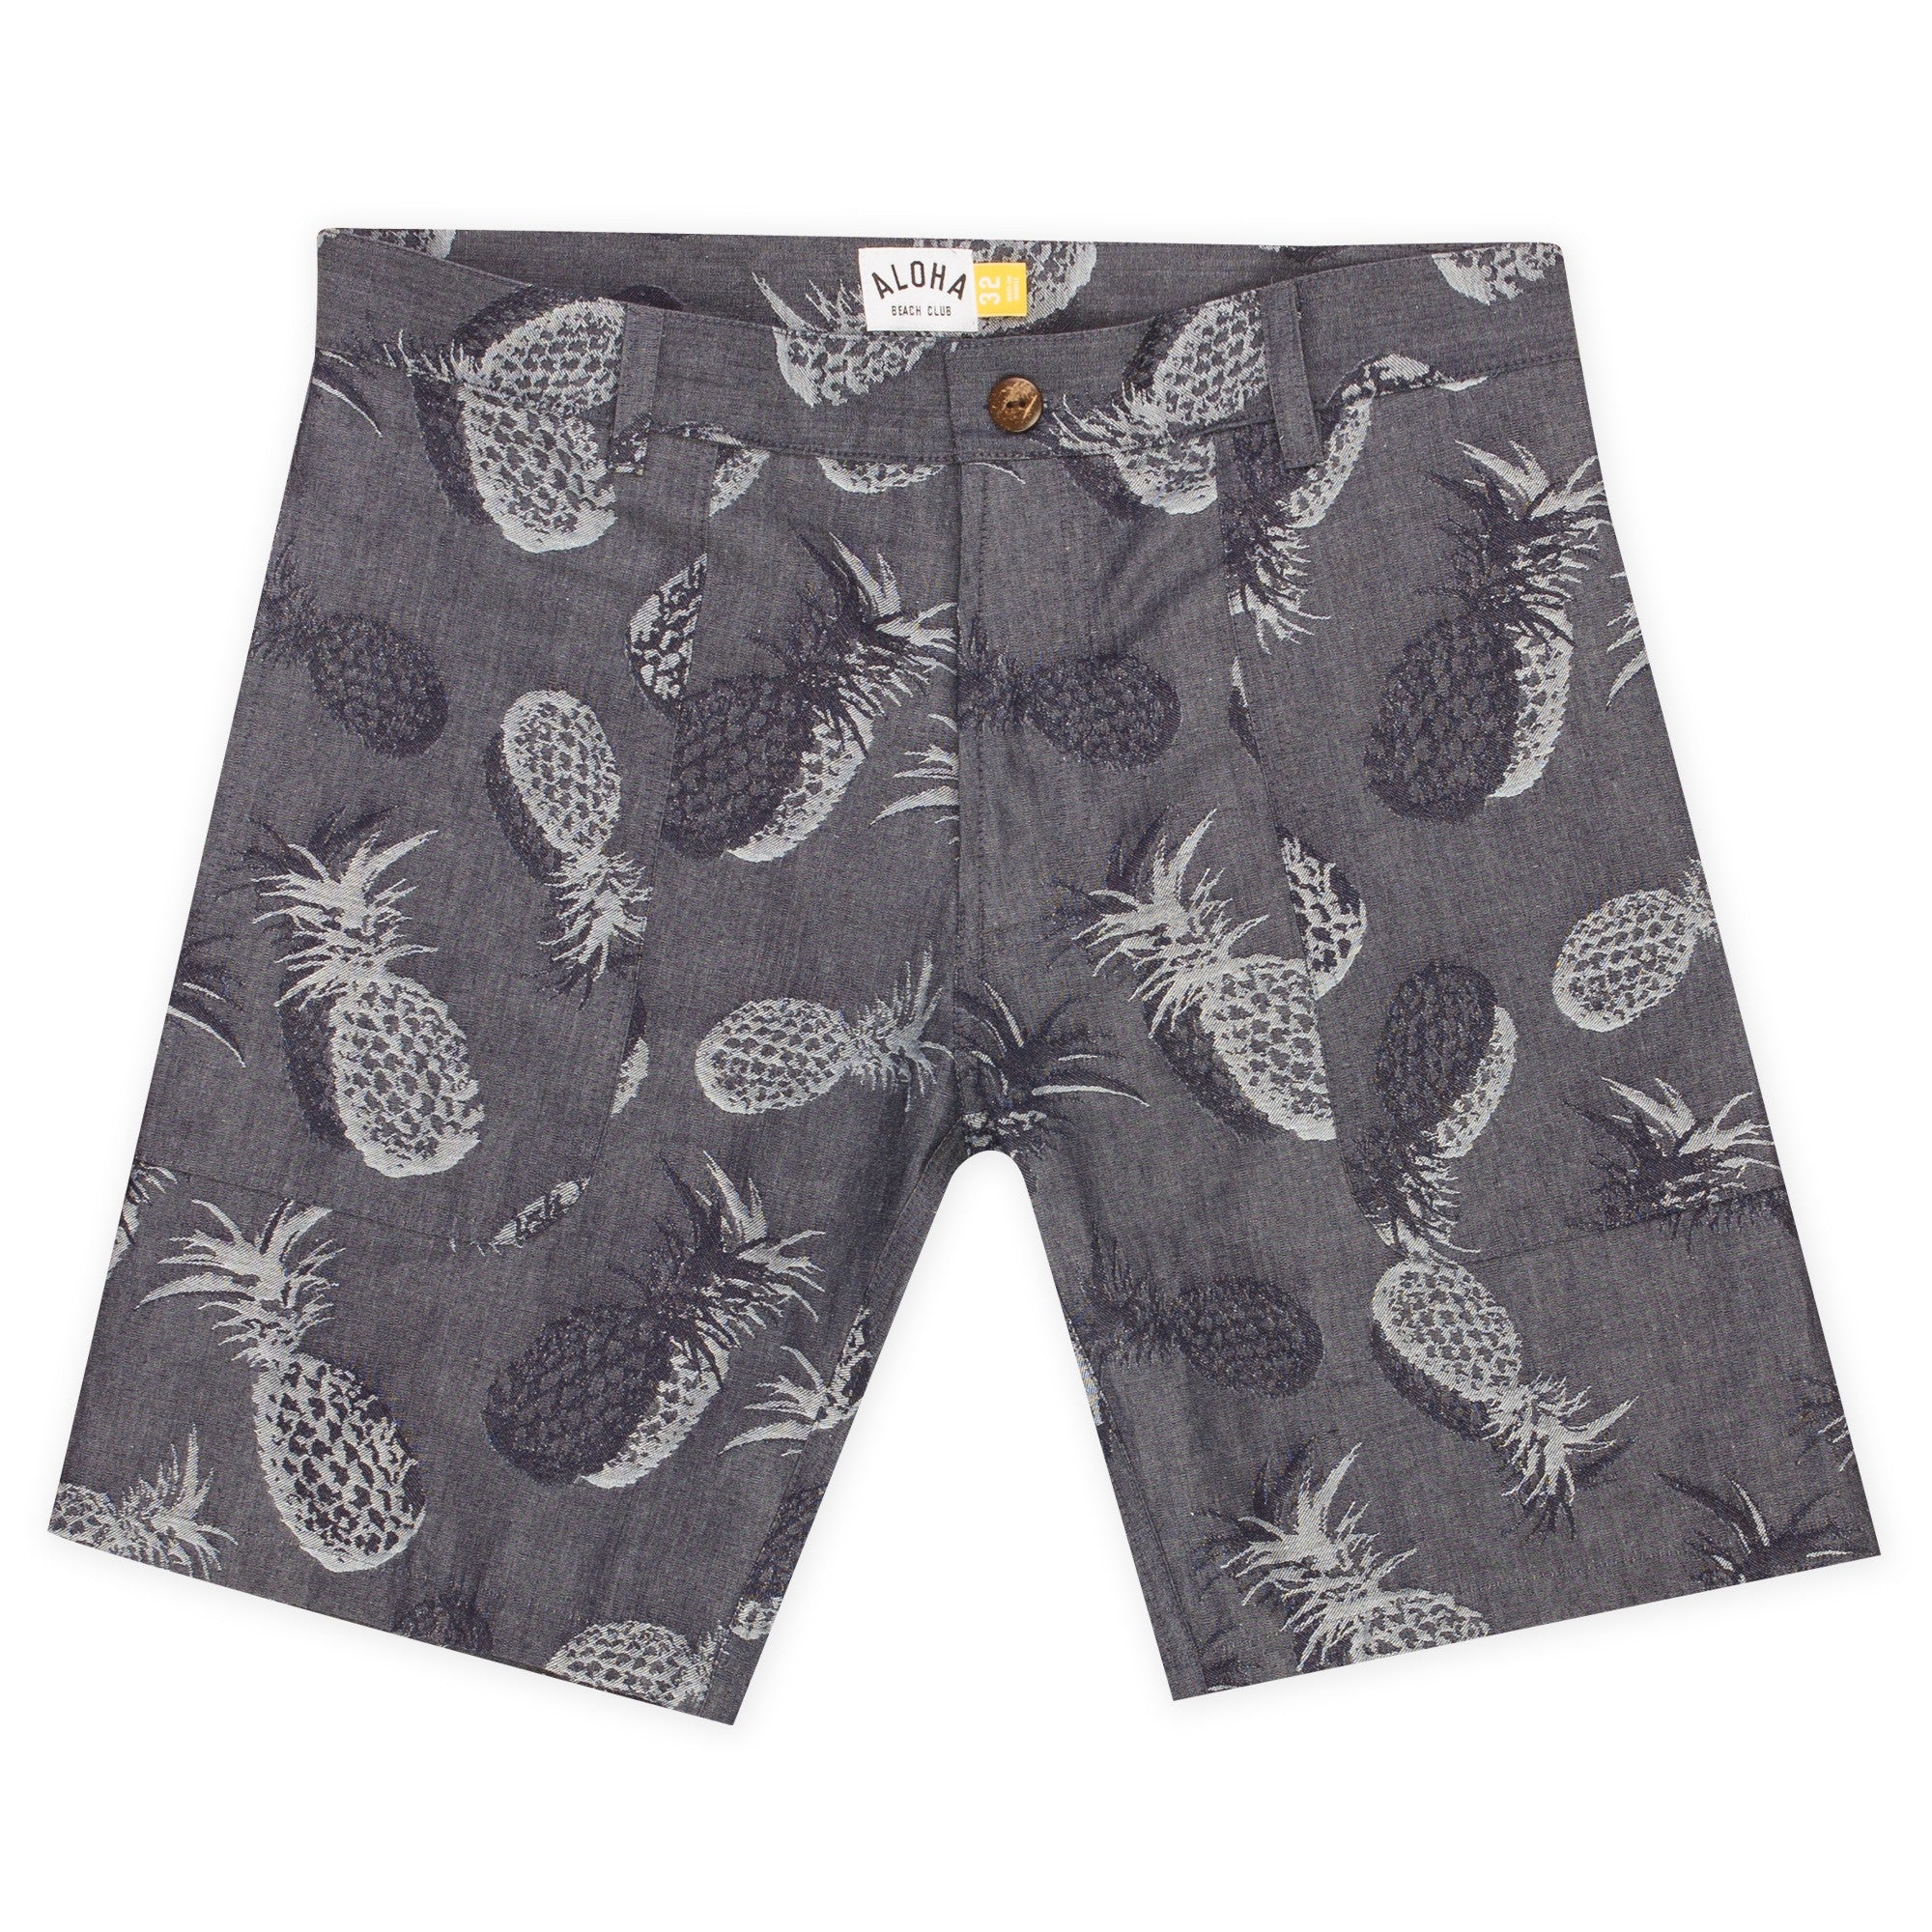 Aloha Beach Club - Keoki Camp Walkshort - Aloha Beach Club